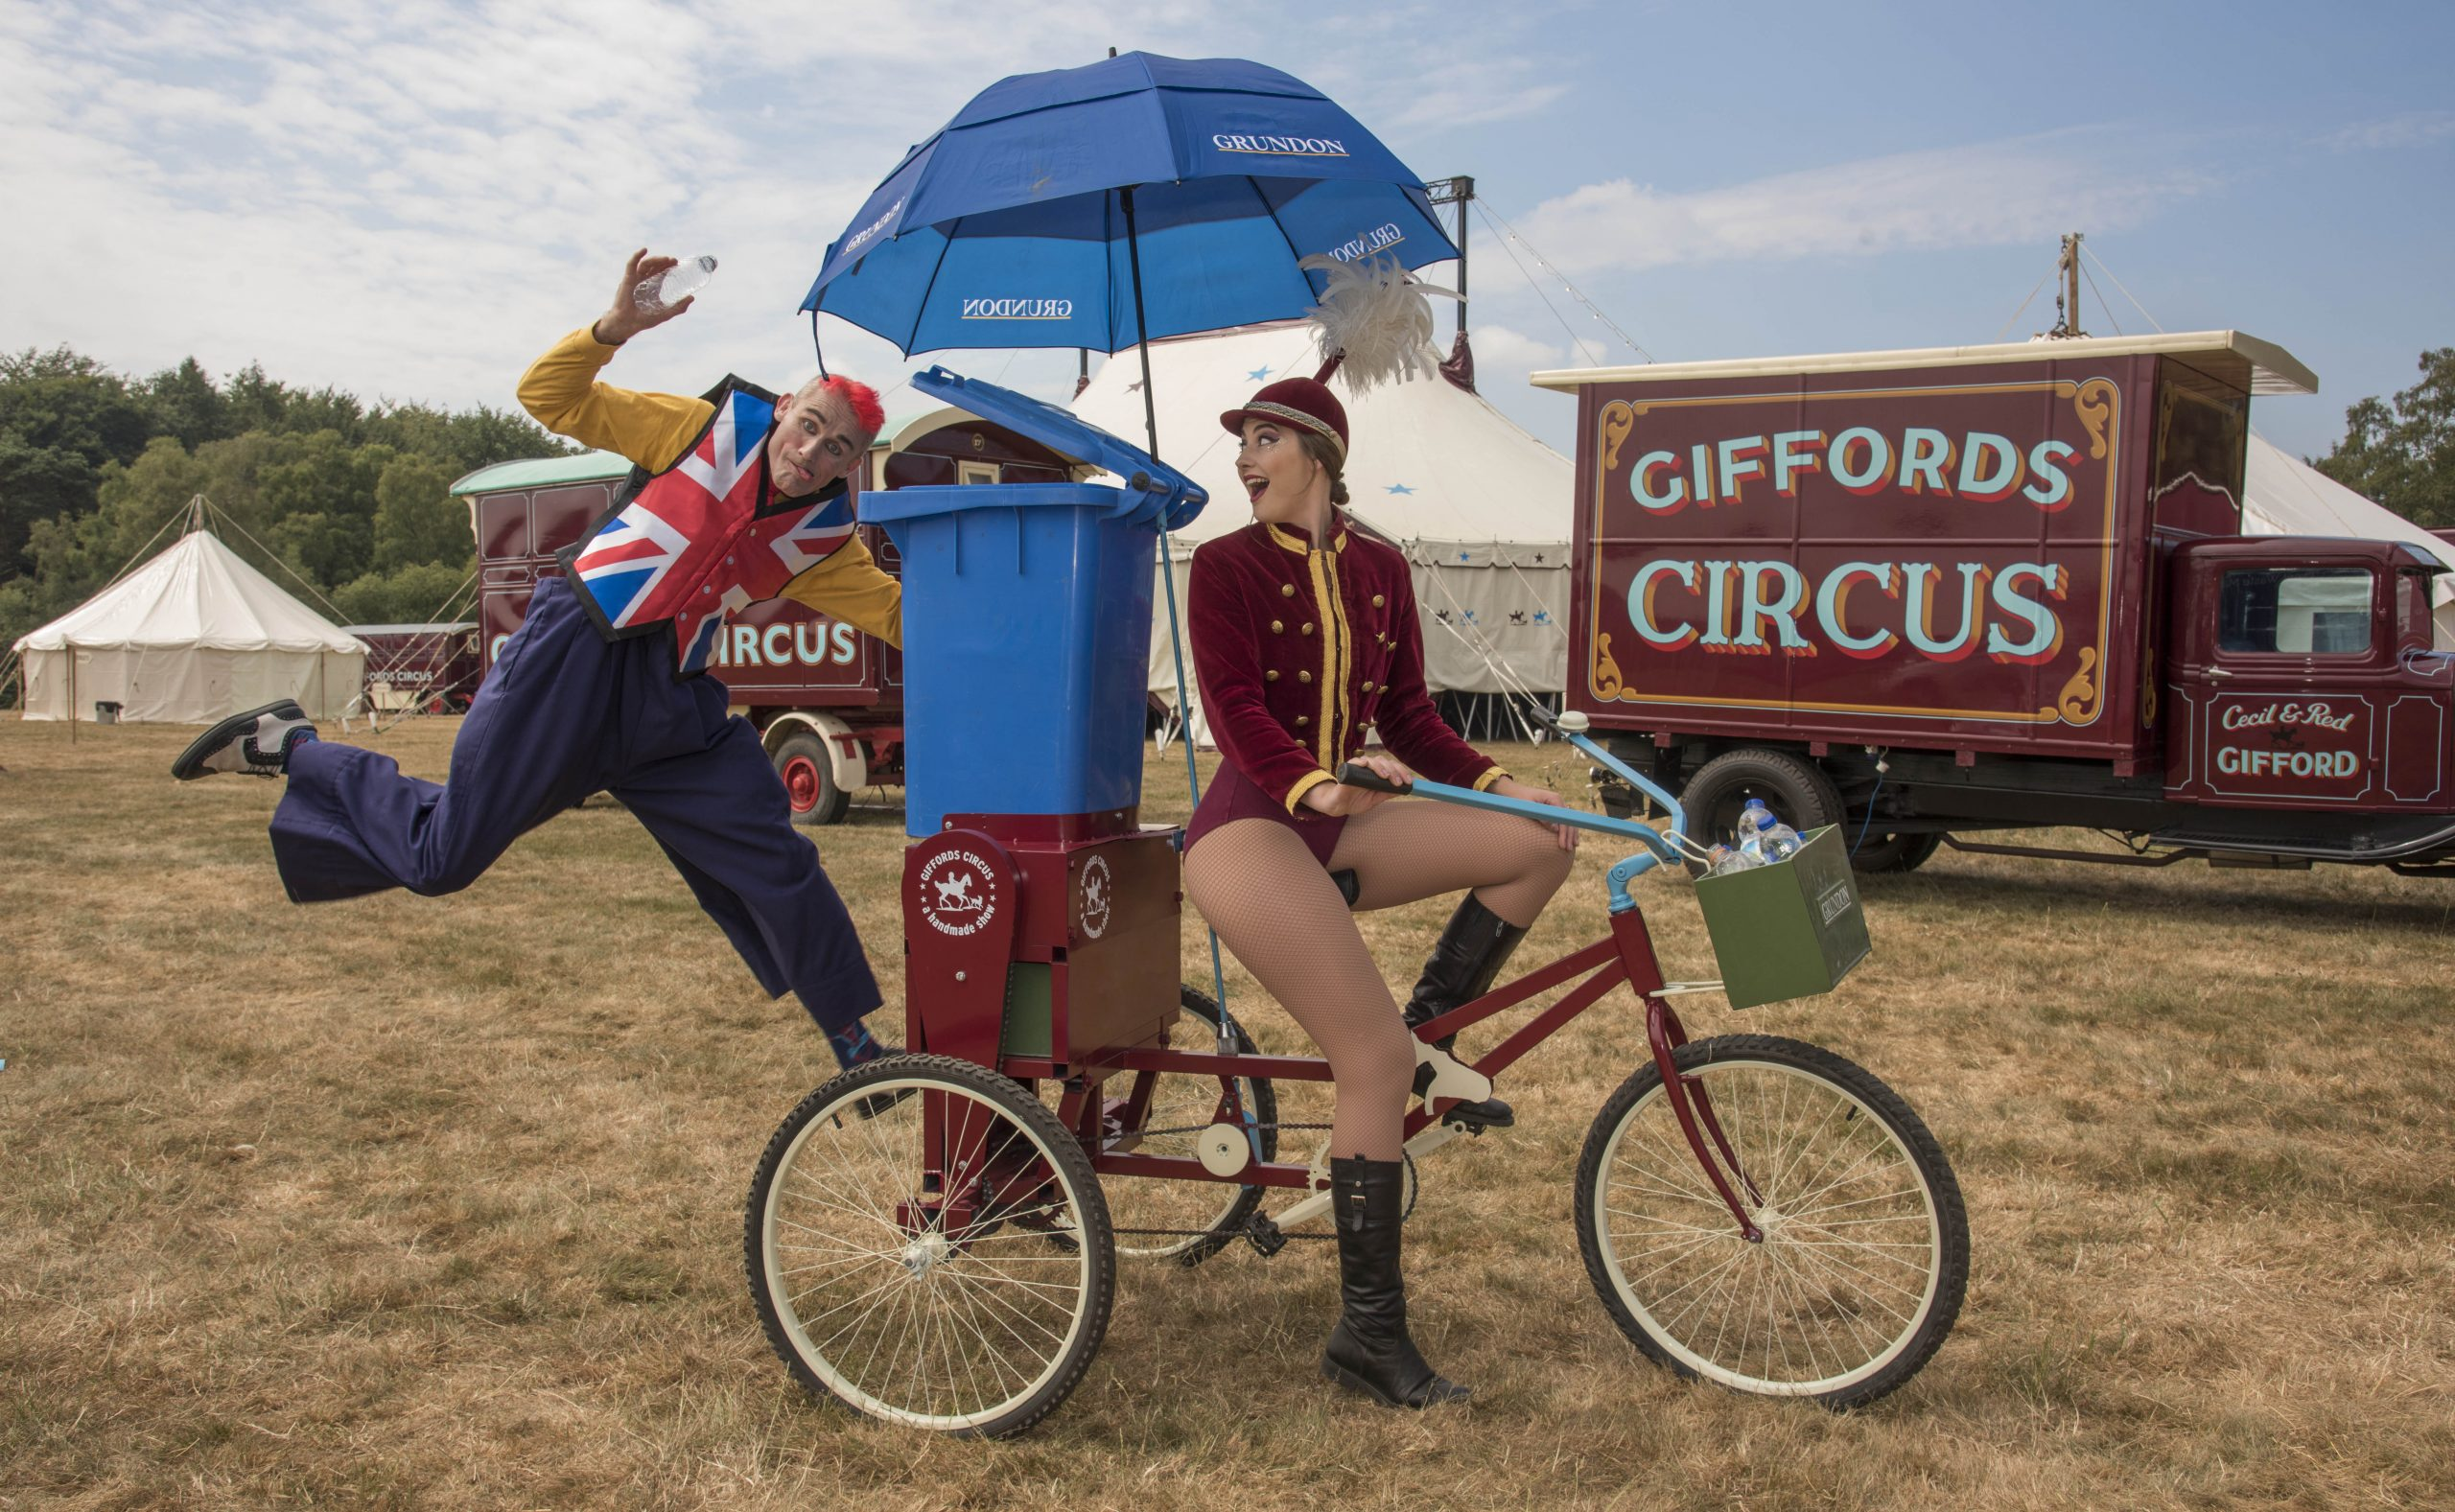 Tweedy and showgirl Lizzie clowning around on the Recycle Bicycle